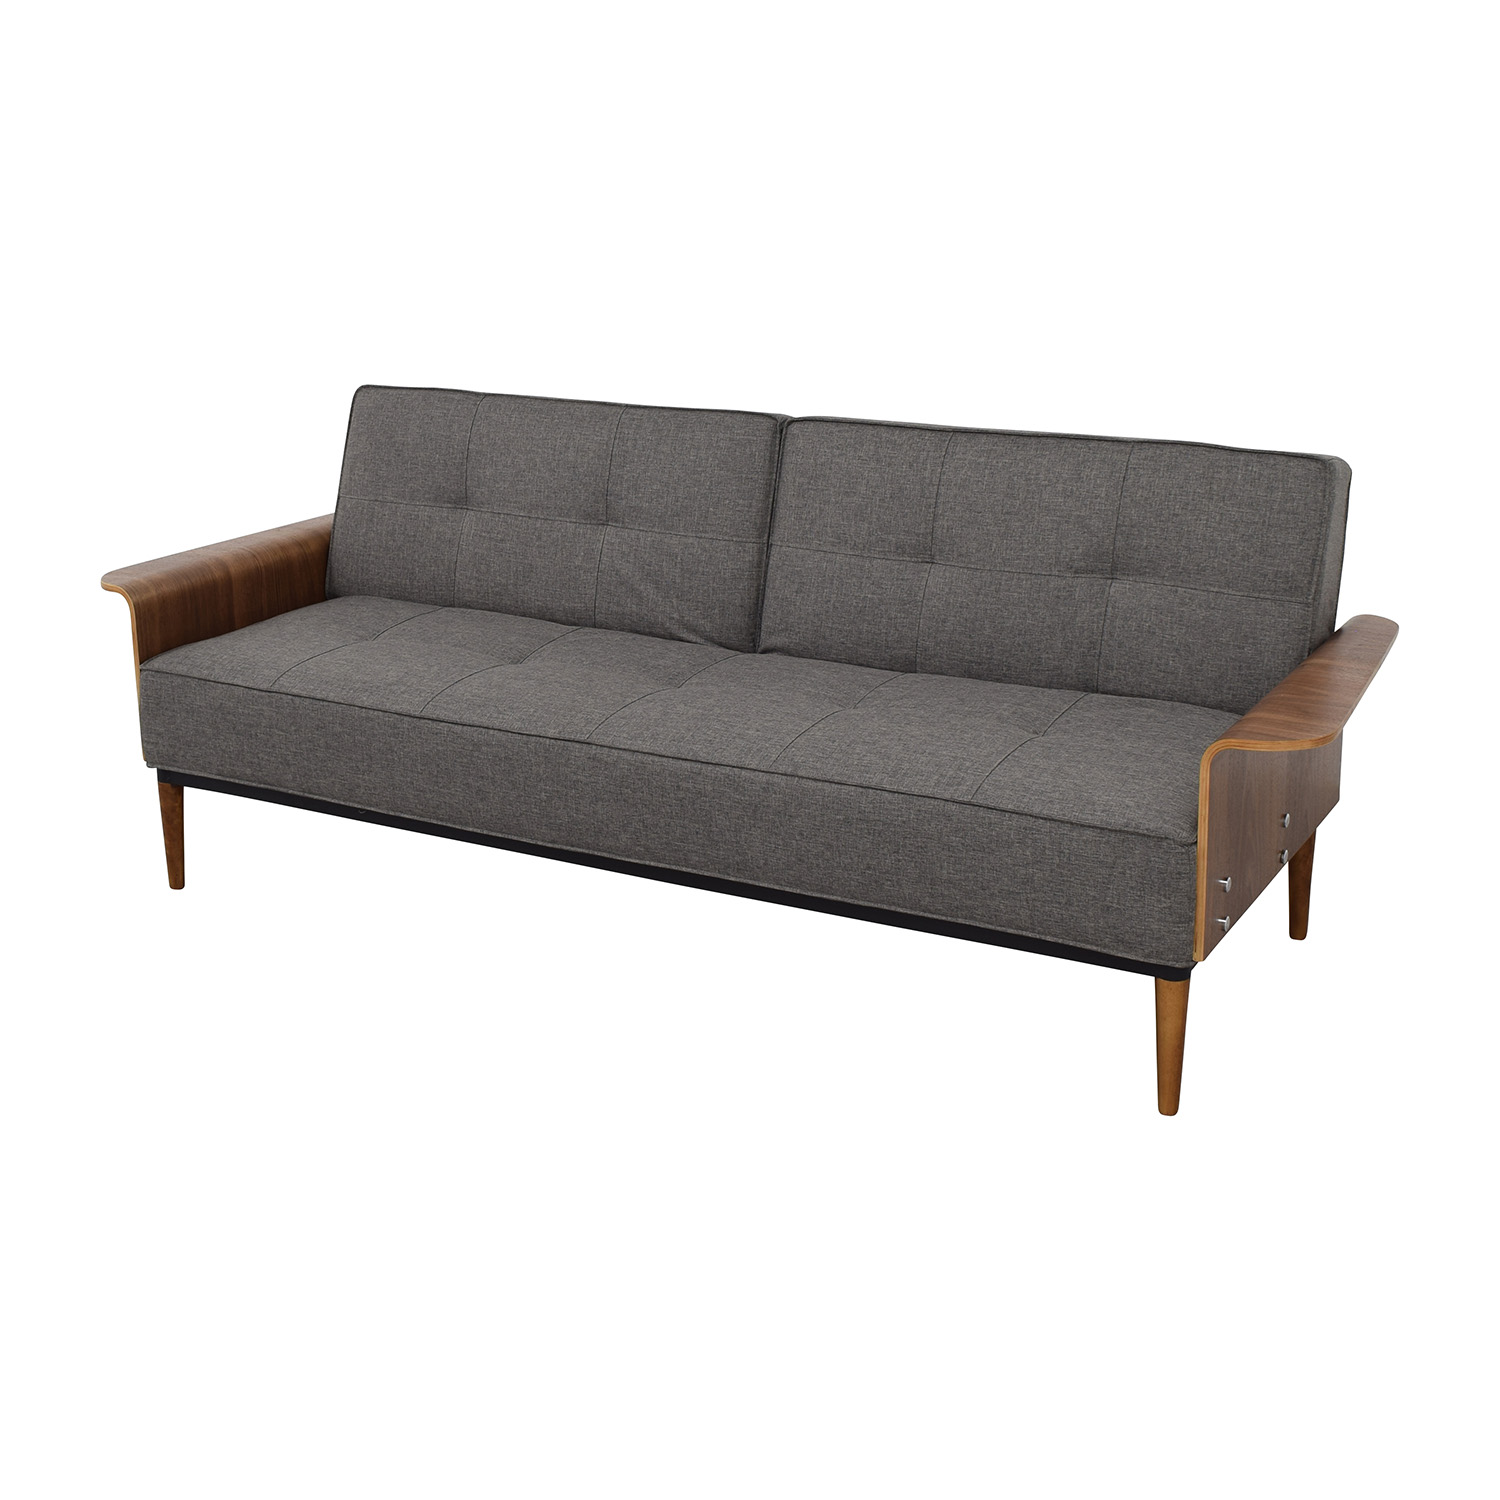 InMod InMod Bjorg Tufted Dark Grey Sofabed second hand